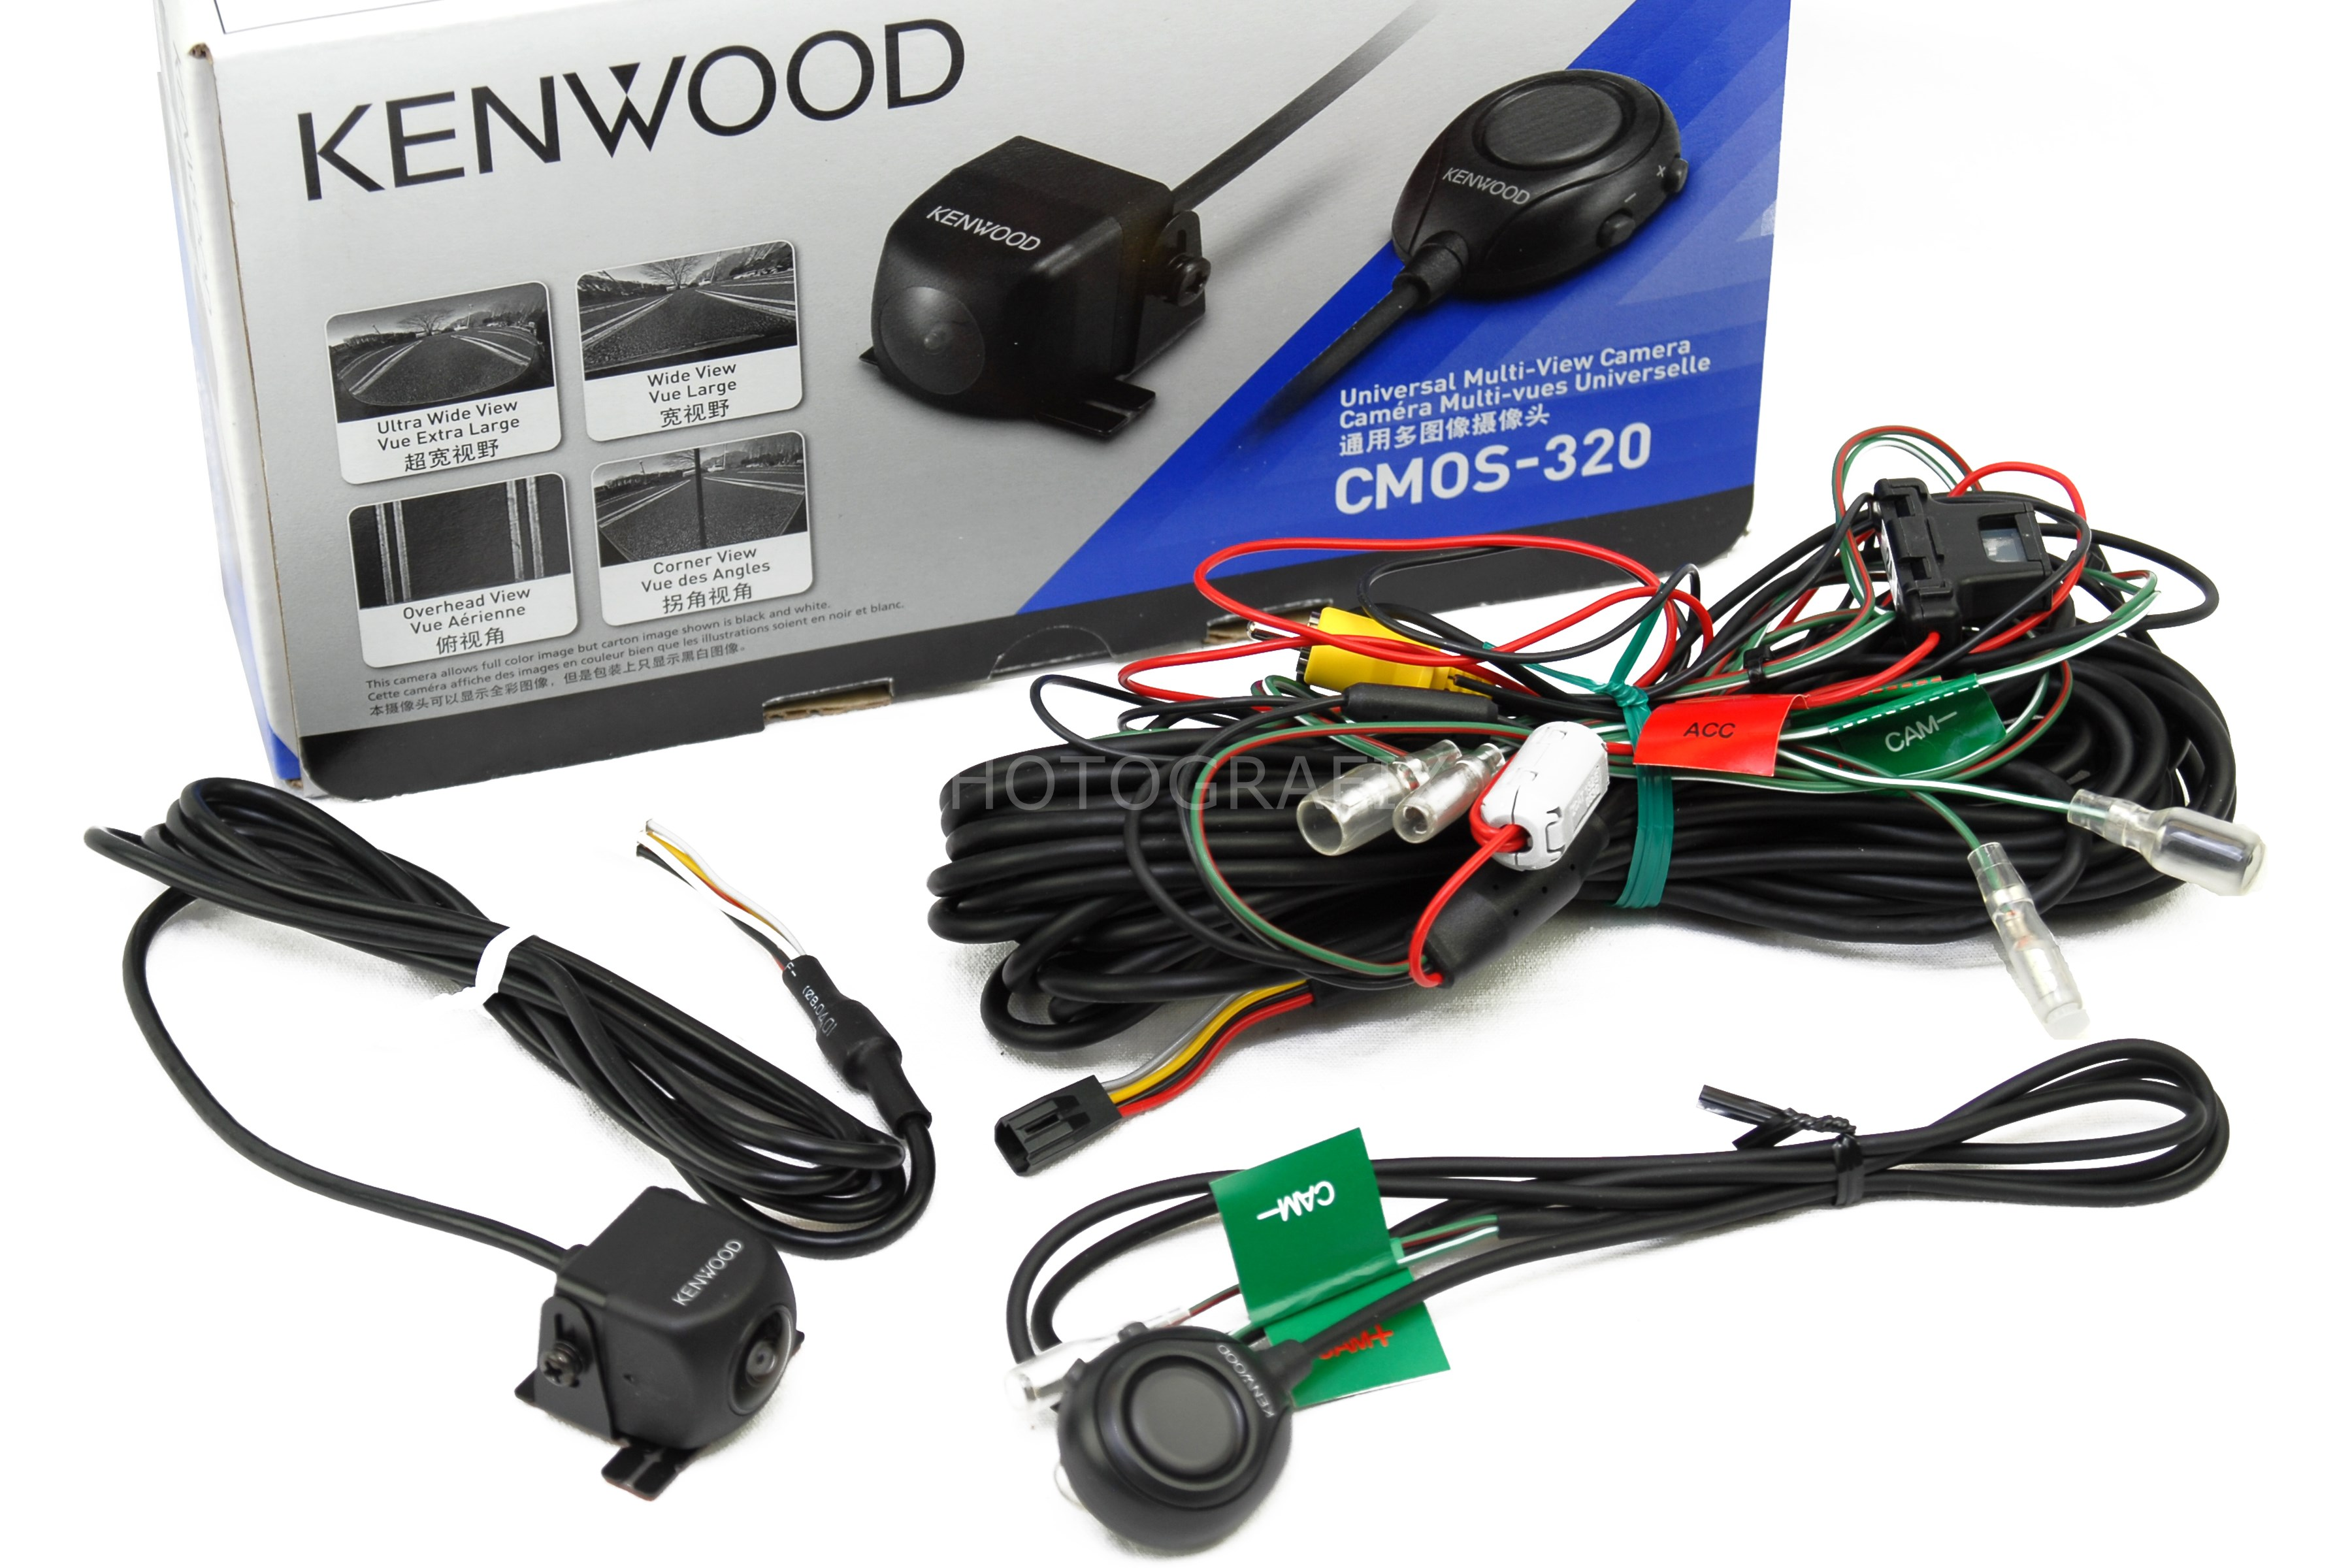 Kenwood camera wiring wiring library kenwood cmos 320 universal rear view car backup camera with 5 view rh m ebay com kenwood wiring harness diagram kenwood backup camera wiring diagram asfbconference2016 Images